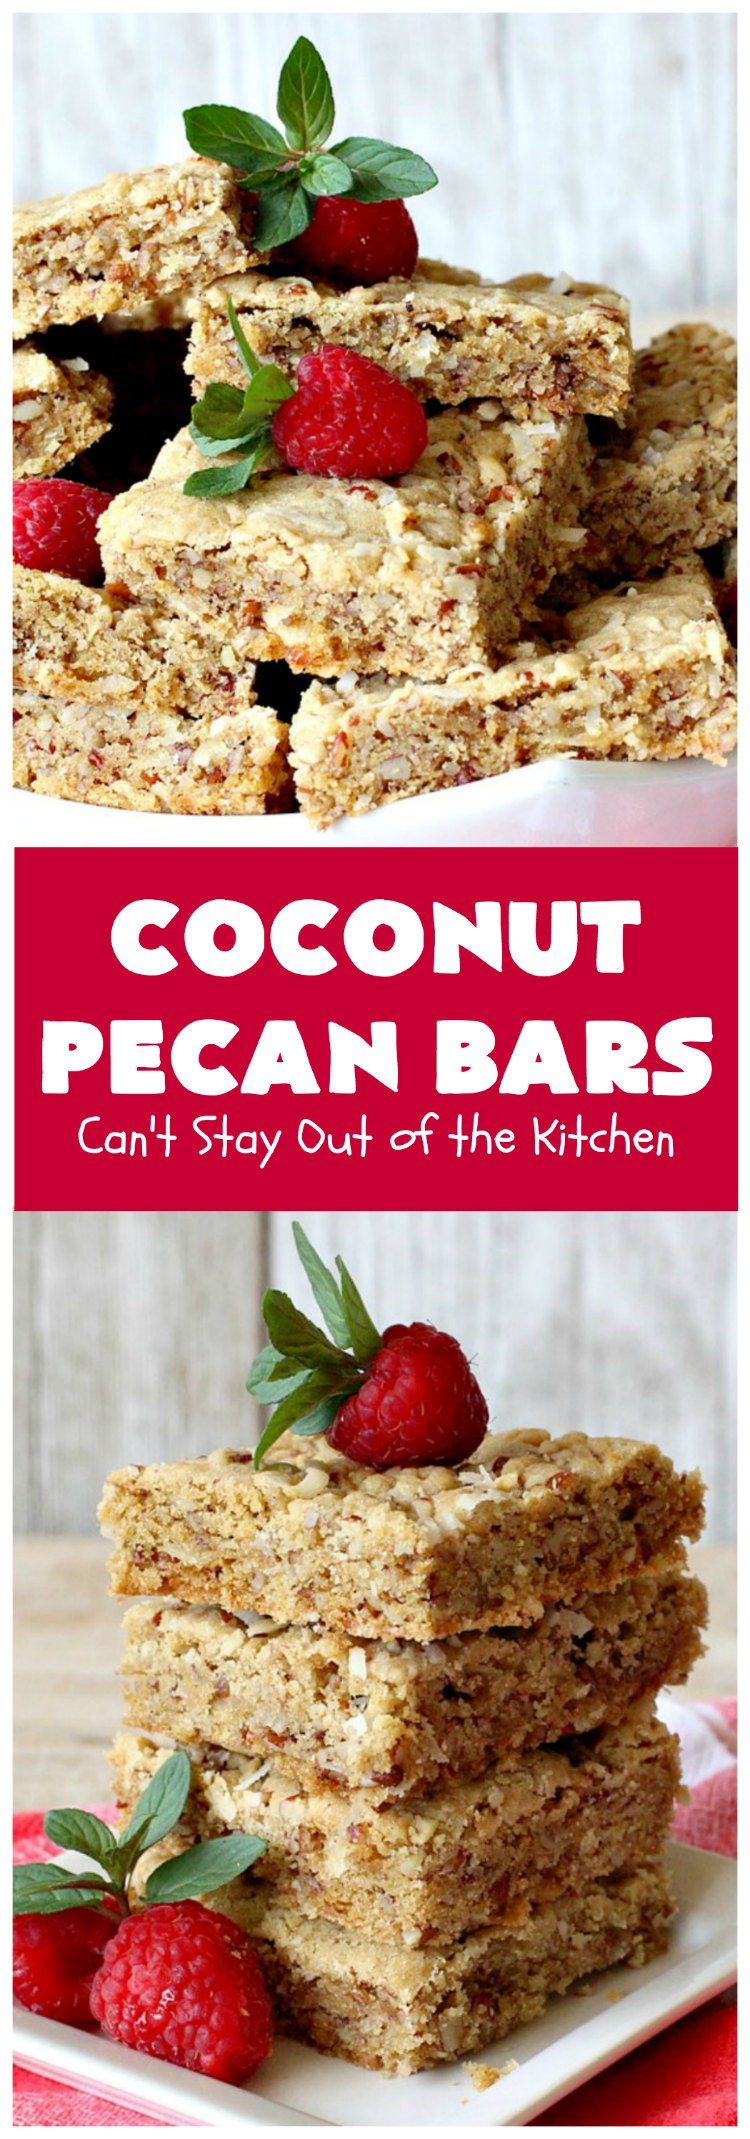 Coconut Pecan Bars | Can't Stay Out of the Kitchen | these delicious bar-type #cookies are filled with #coconut & #pecans. Every bite is chewy, gooey, crunchy & out of this world! #tailgating #holiday #HolidayDessert #CoconutDessert #PecanDessert #CoconutPecanBars